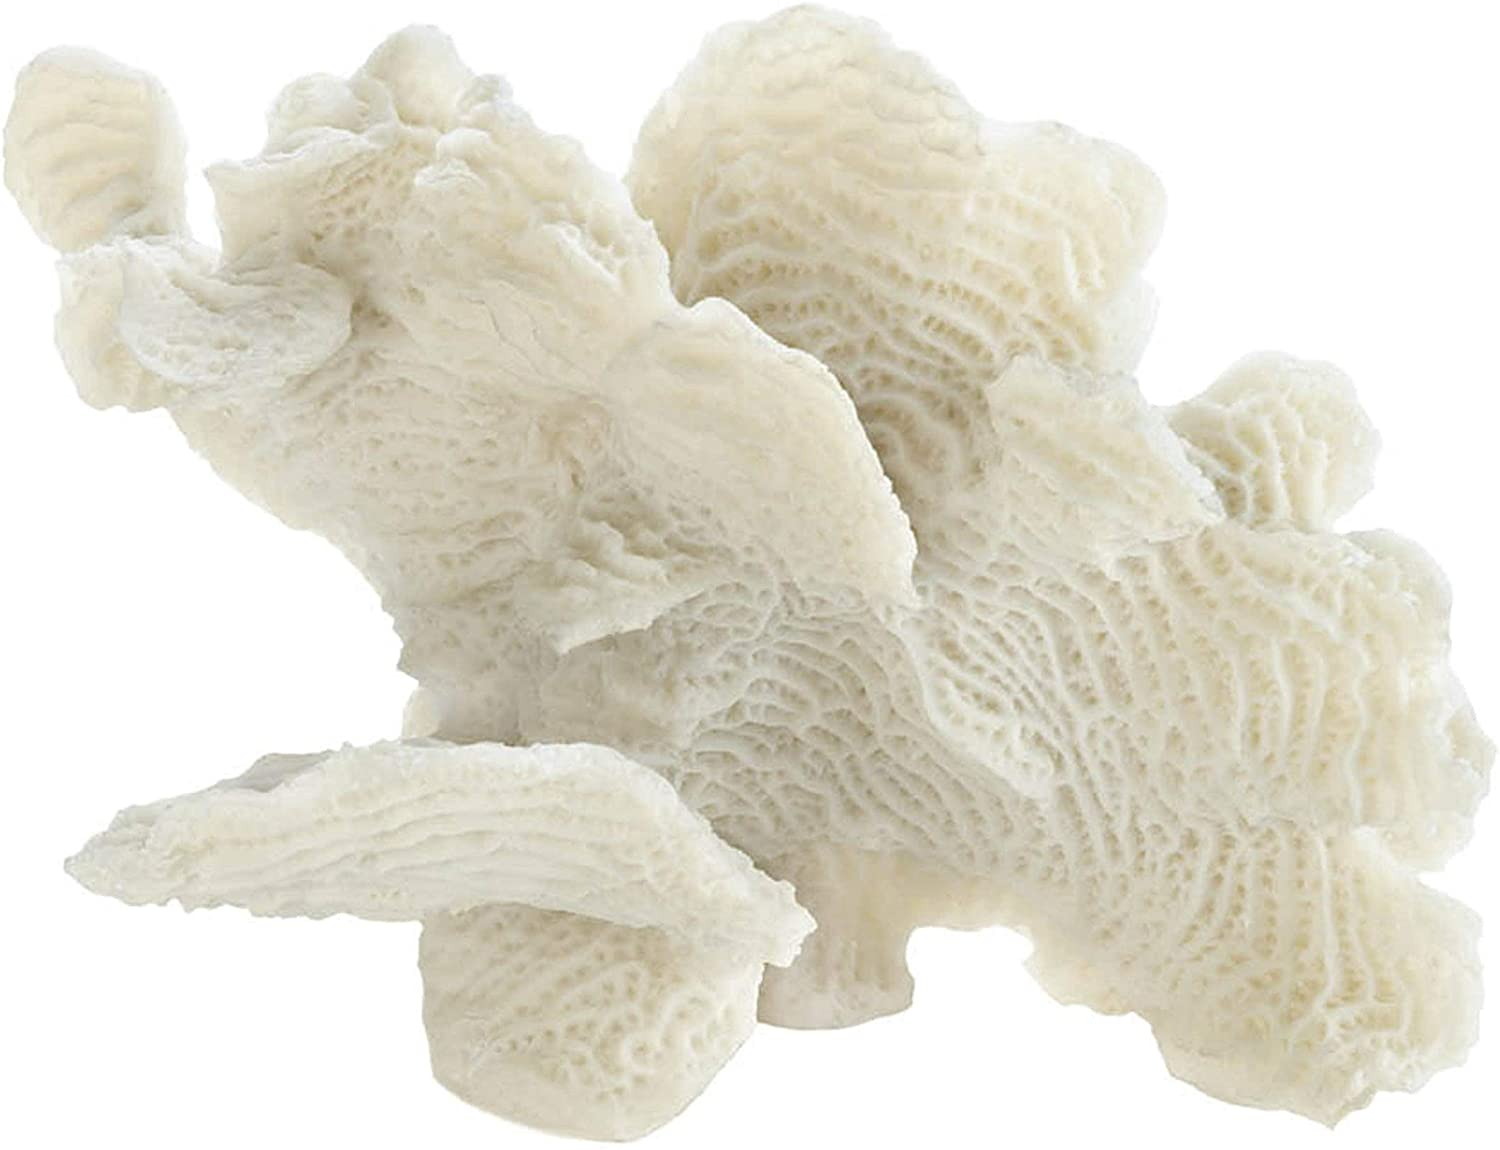 Accent Plus Large White Coral Tabletop Decor 9.25x4.5x6.5""